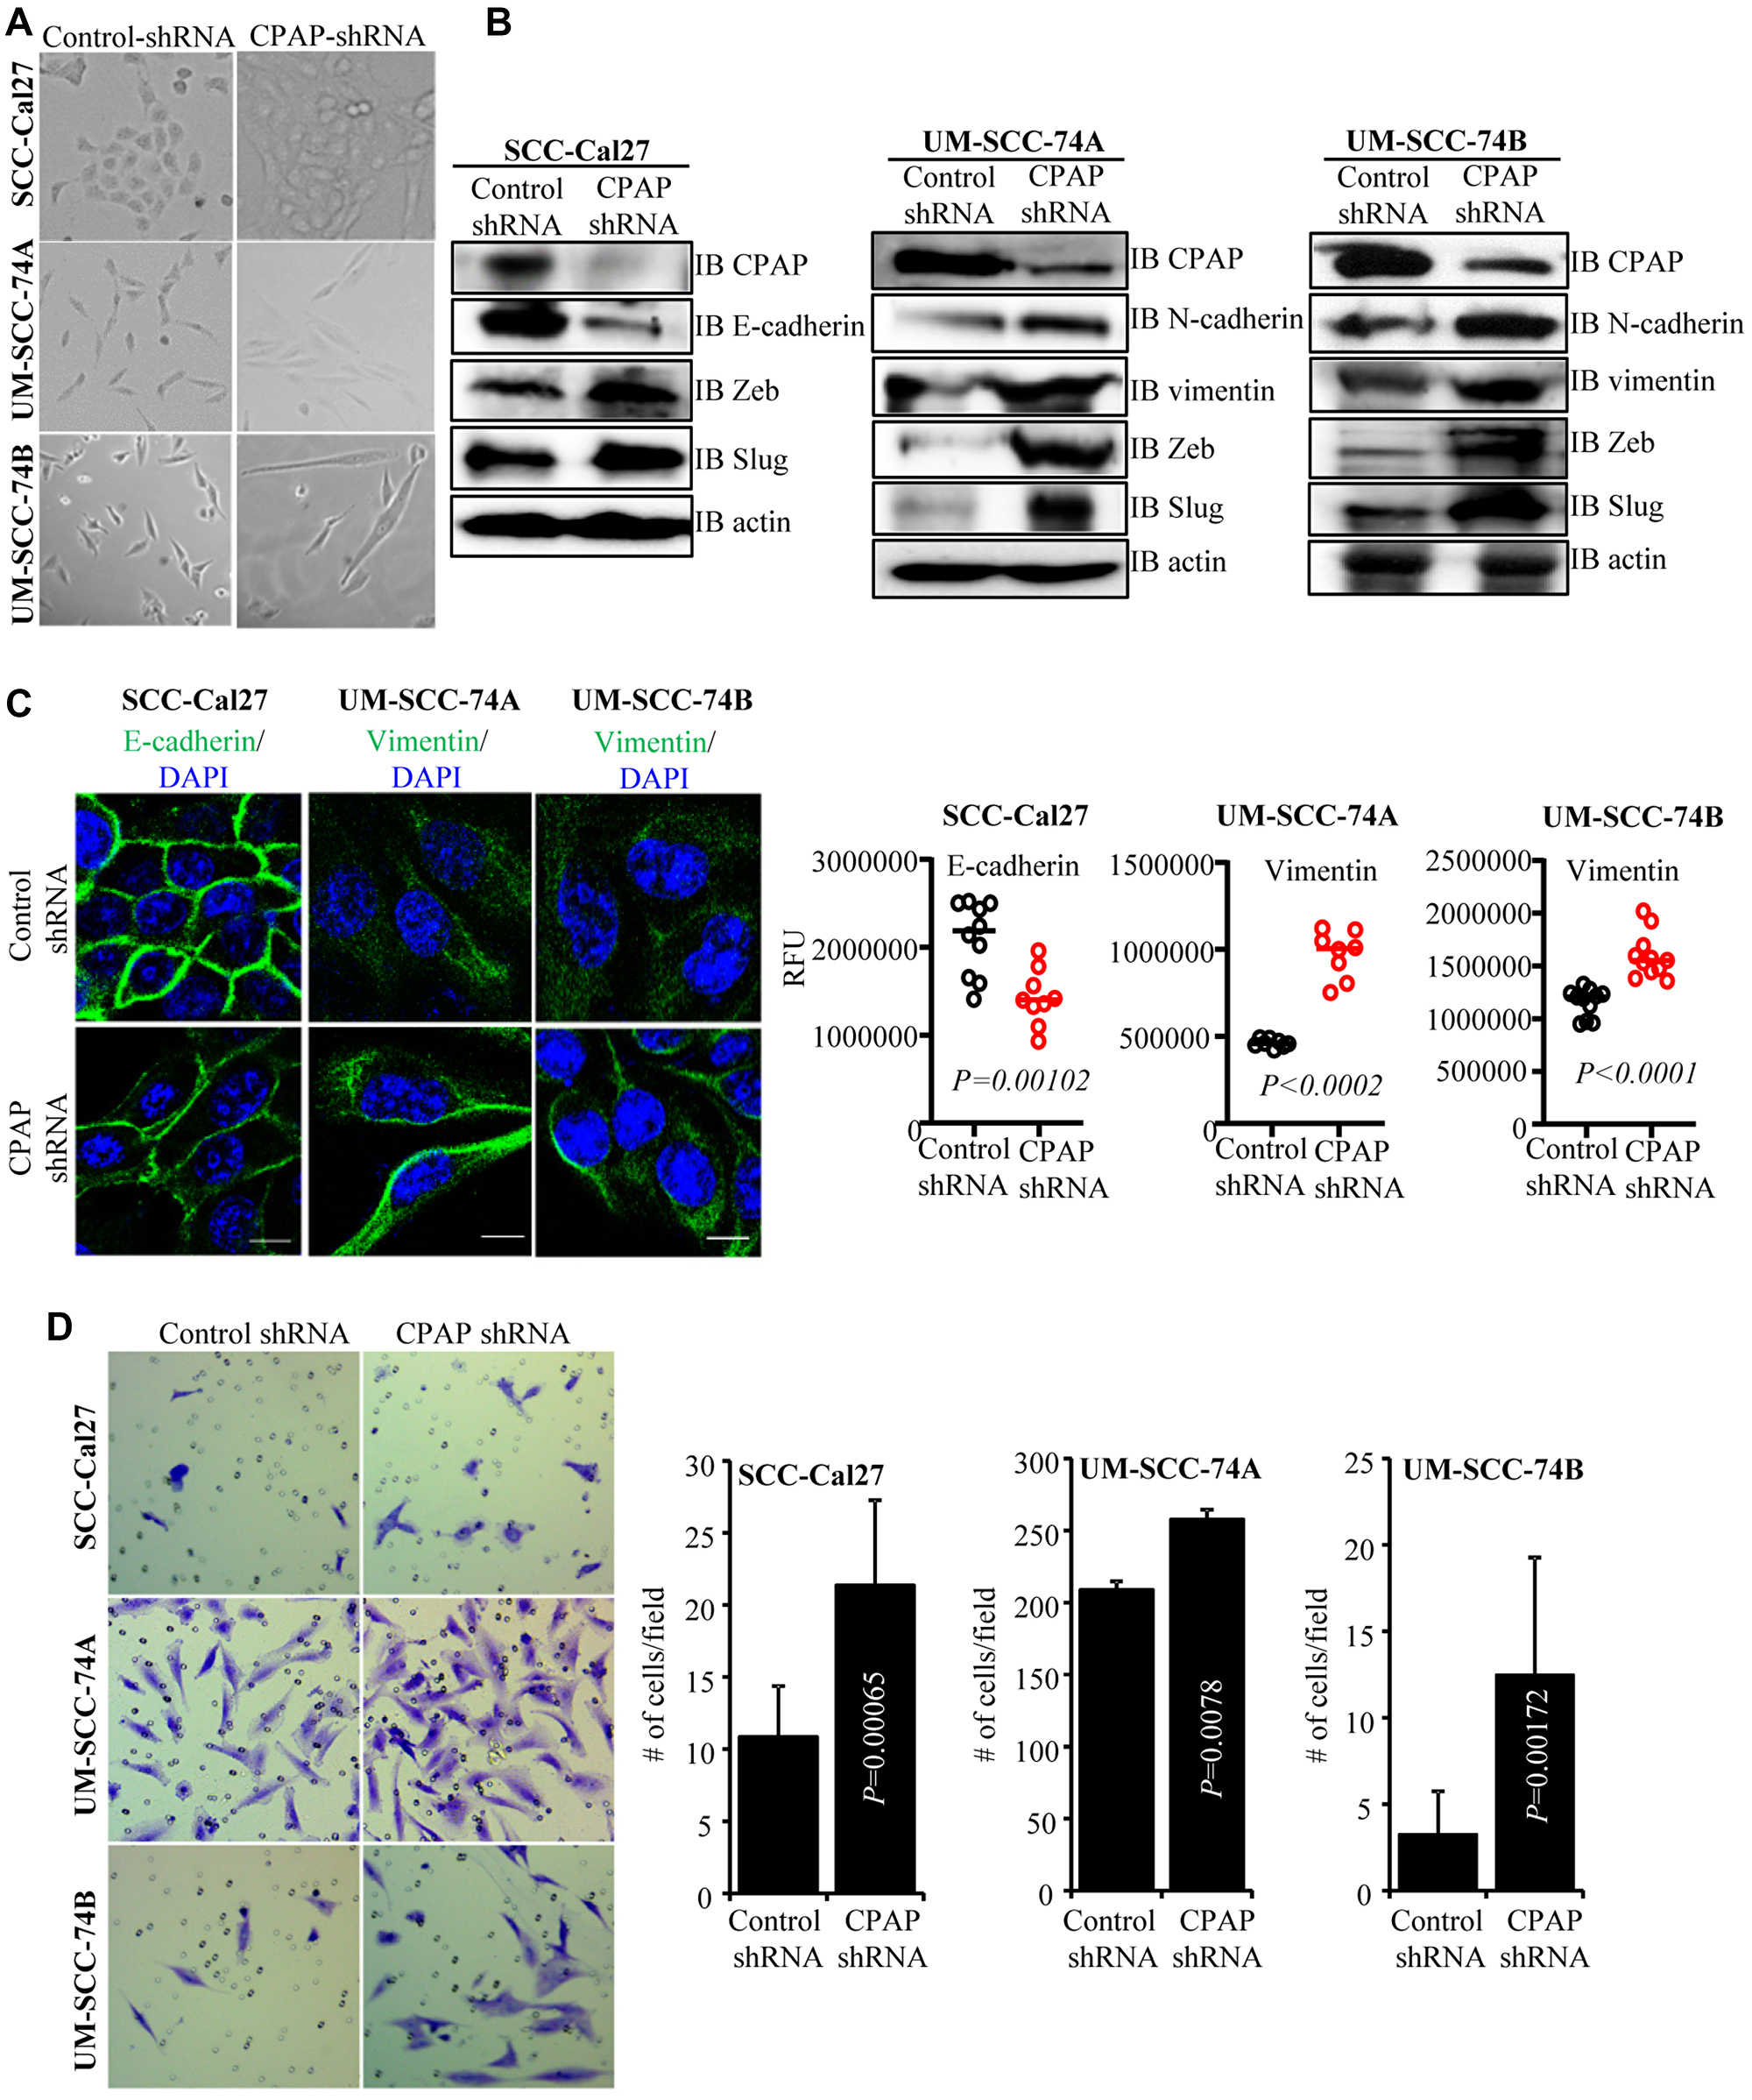 CPAP depleted cells show spontaneous EMT-like morphology and upregulated mesenchymal protein expression.